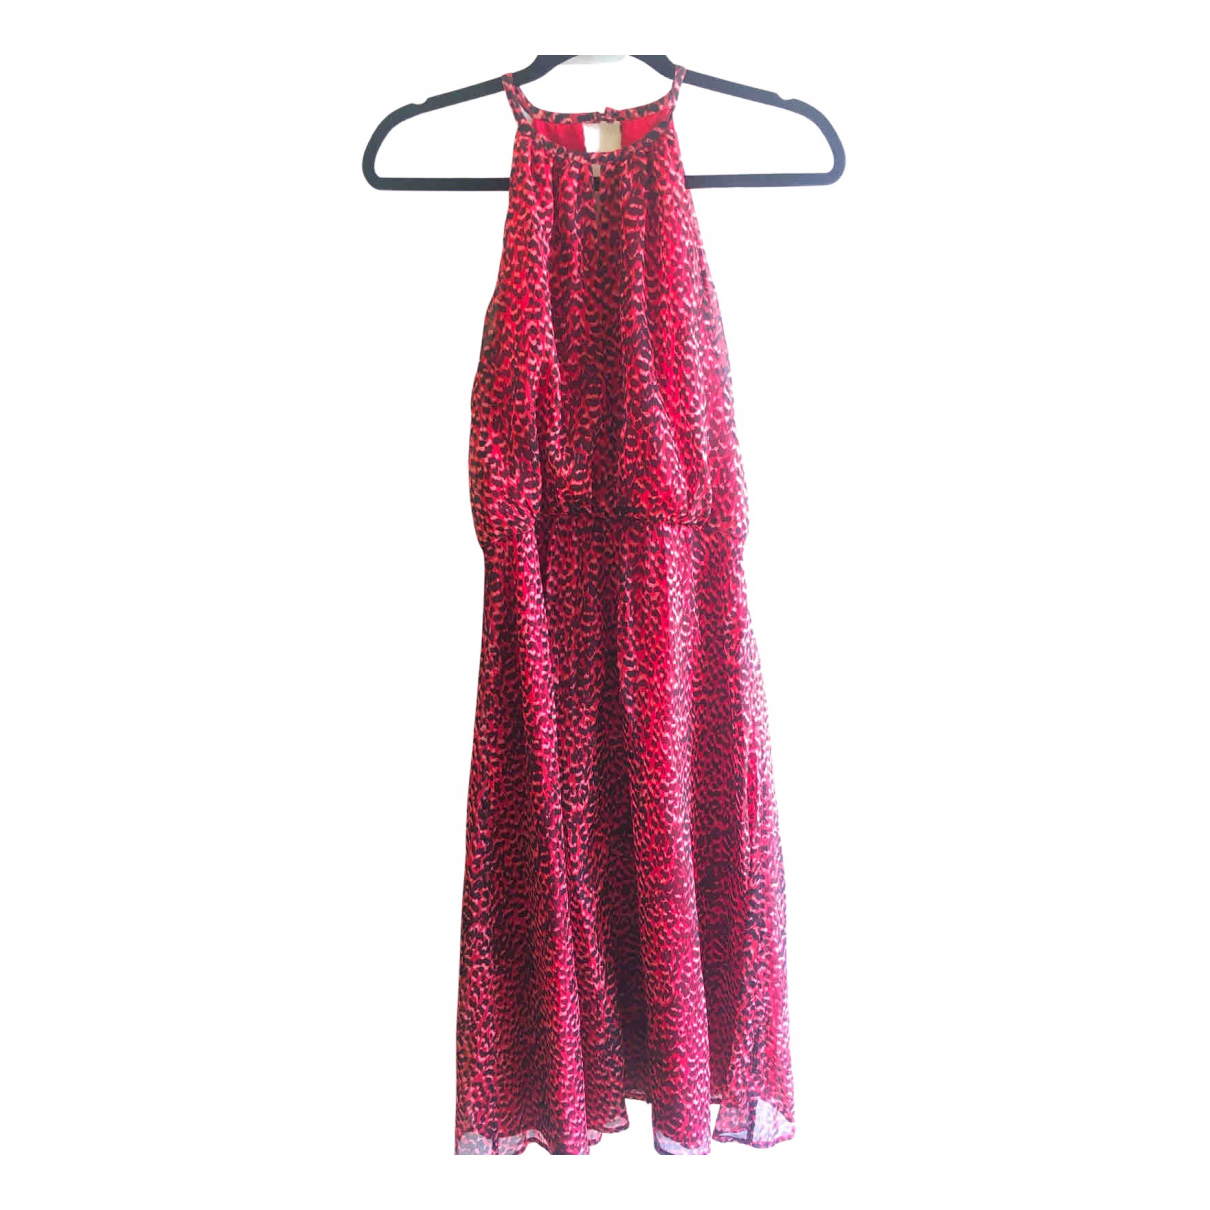 French Connection \N Kleid in  Rot Polyester